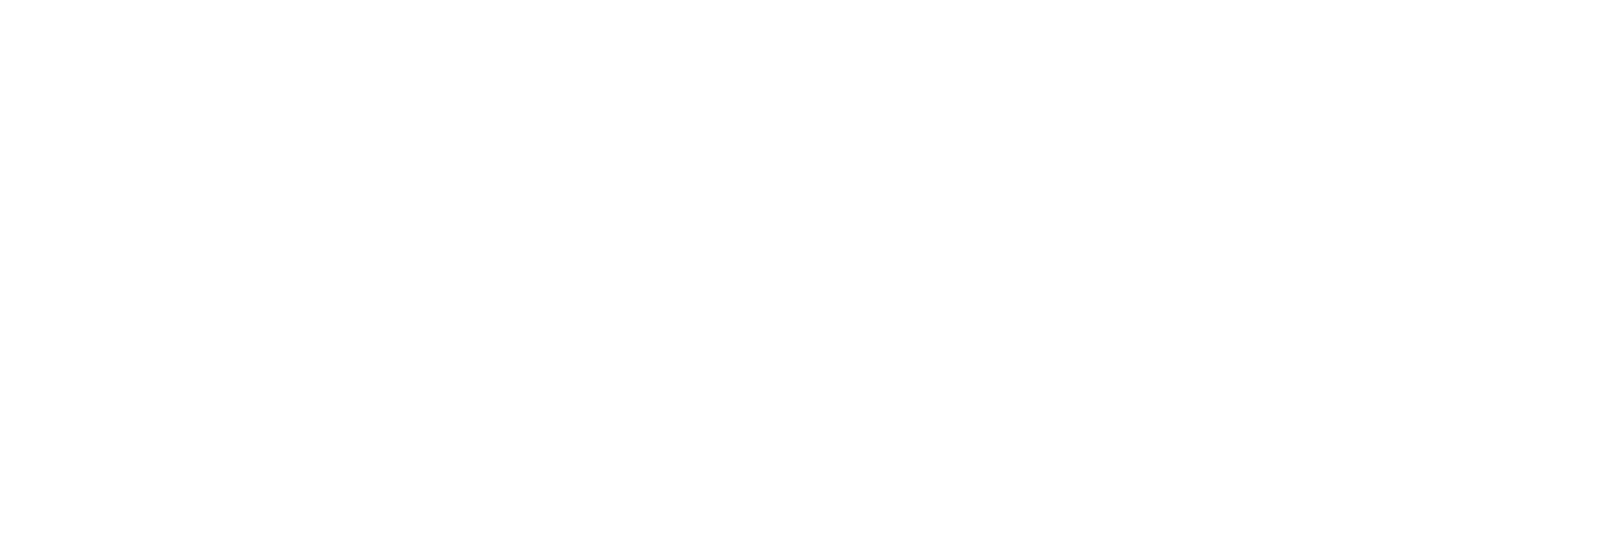 The Nature Center at Shaker Lakes